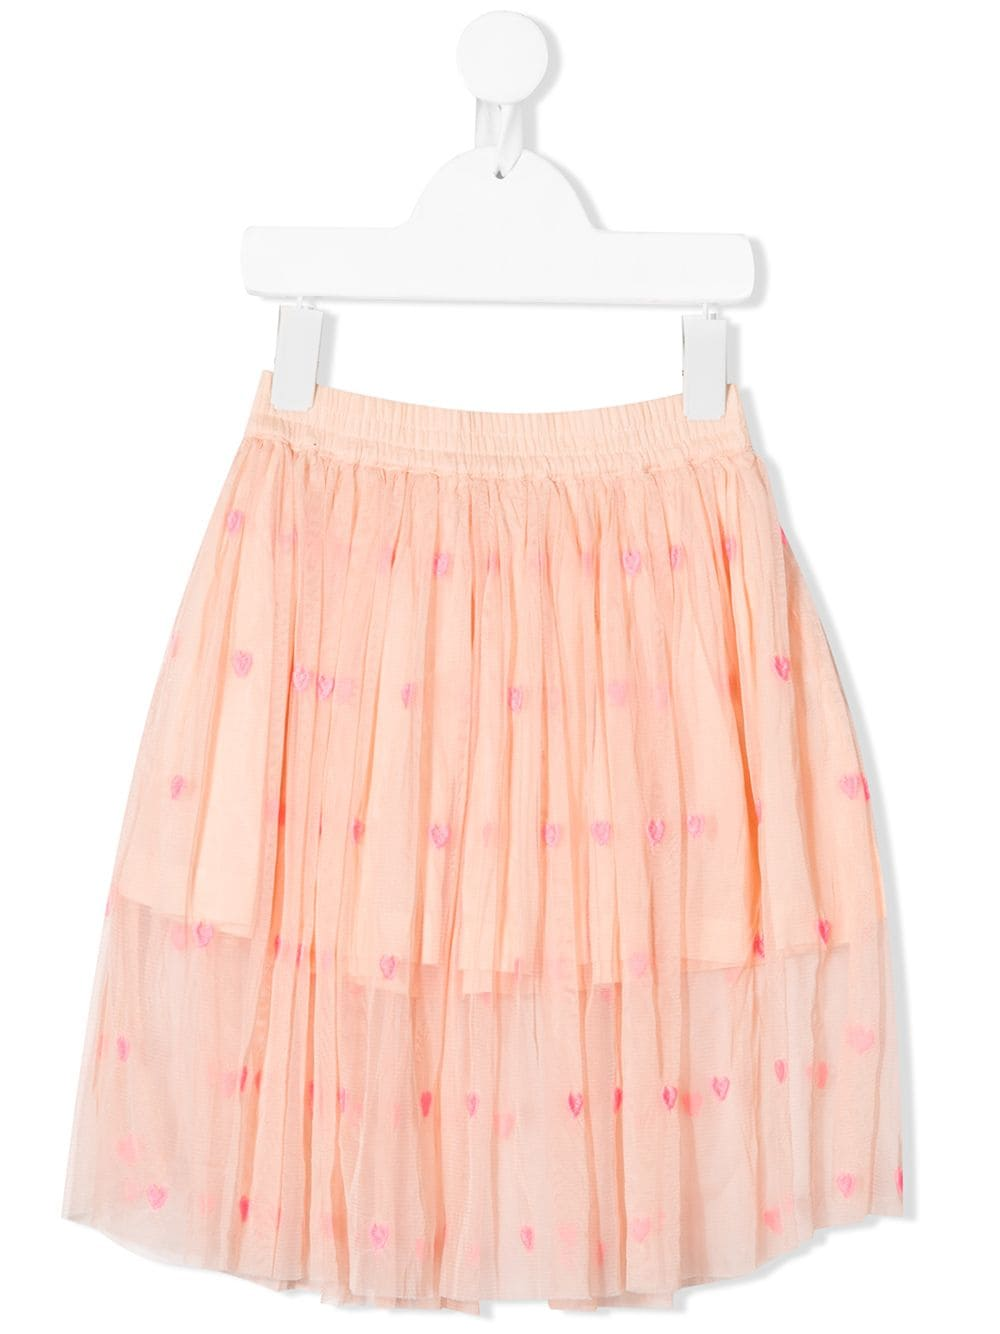 Little Hearts SMC Tulle Skirt